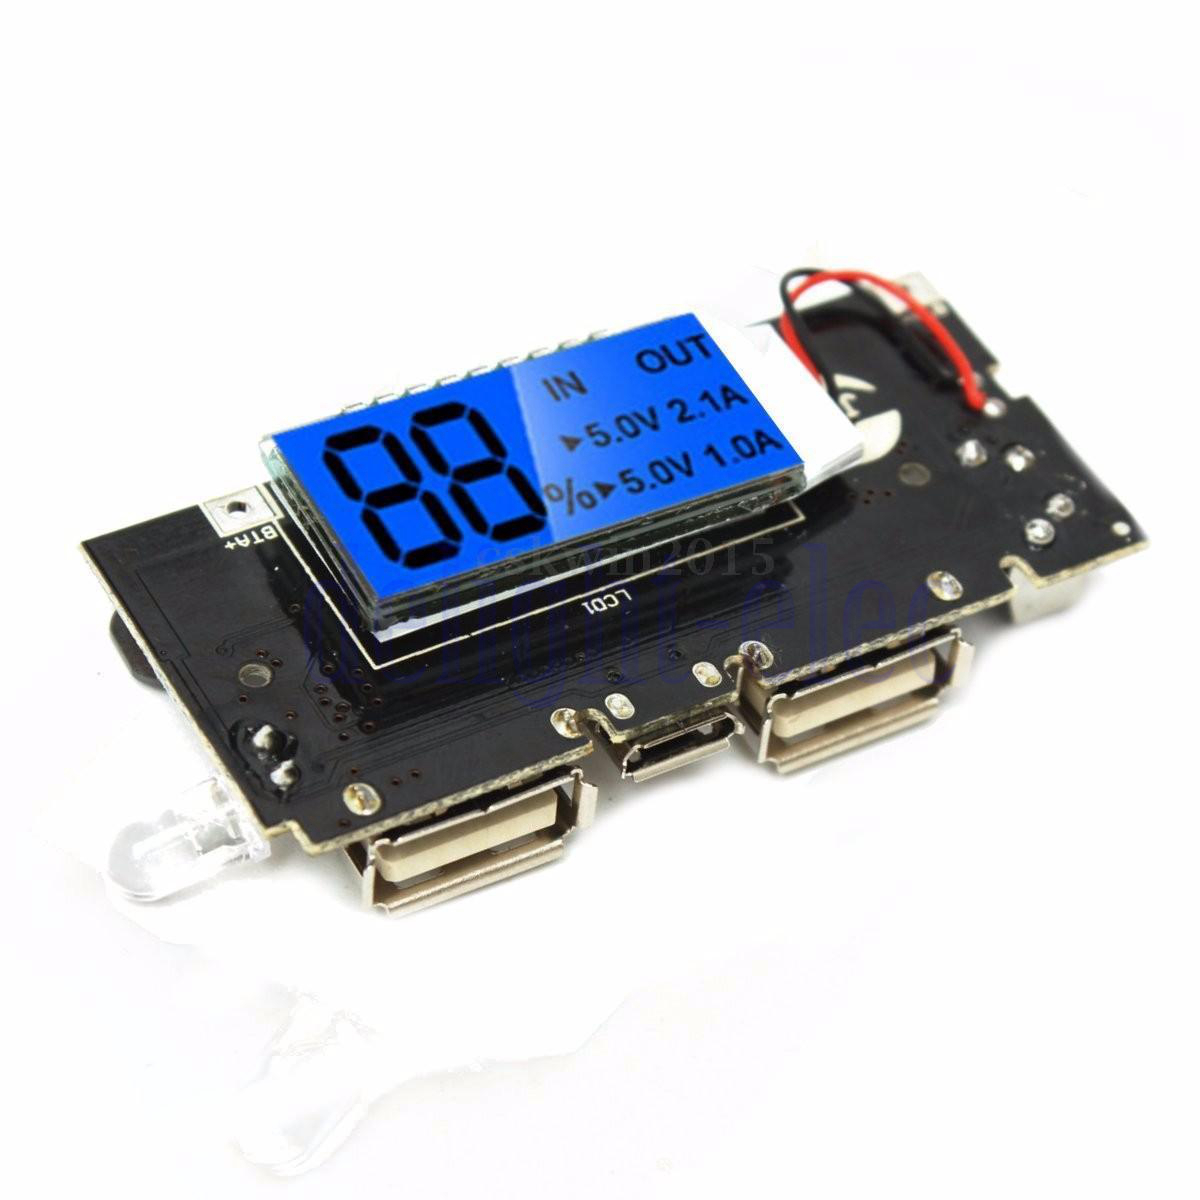 Diy Lithium Ion Battery Charger Circuit Usb Li Circuits Desulfator Images Frompo Dual 5v 1a 2 Mobile Power Bank 18650